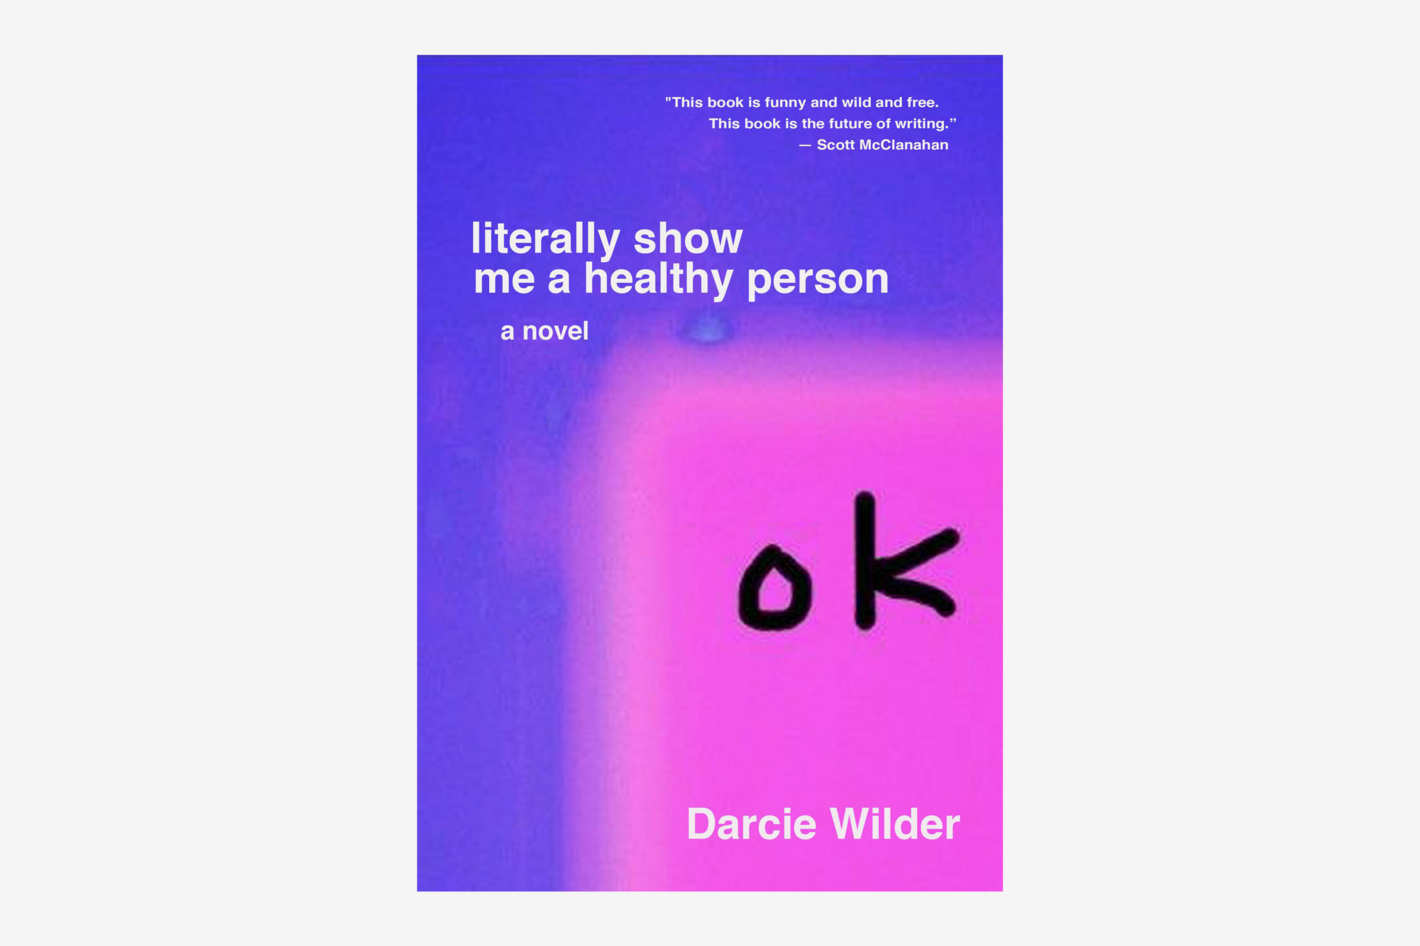 <em>literally show me a healthy person</em>, by Darcie Wilder